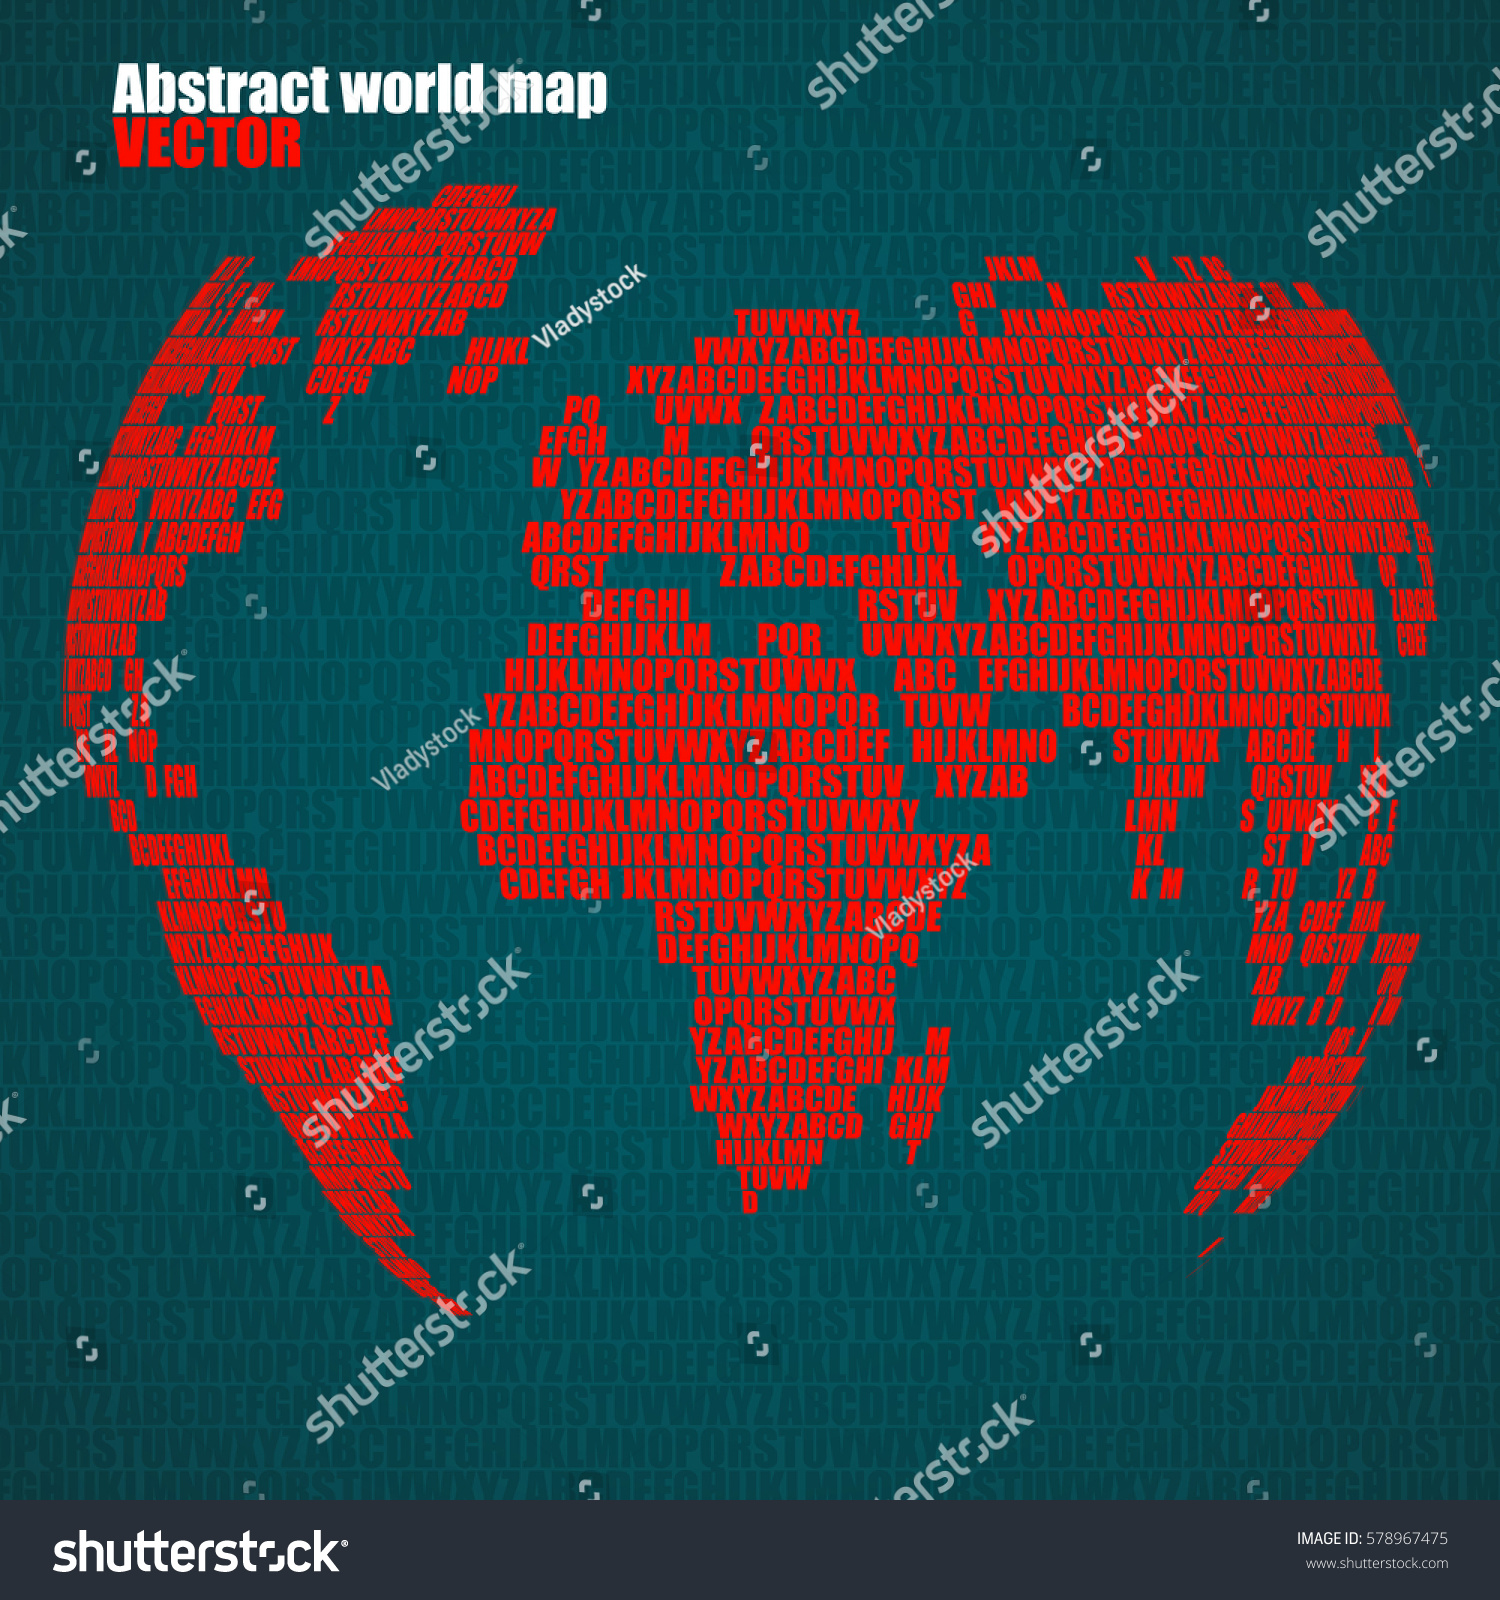 Abstract world map letters english alphabet stock vector 578967475 abstract world map with letters of english alphabet vector globe background gumiabroncs Image collections